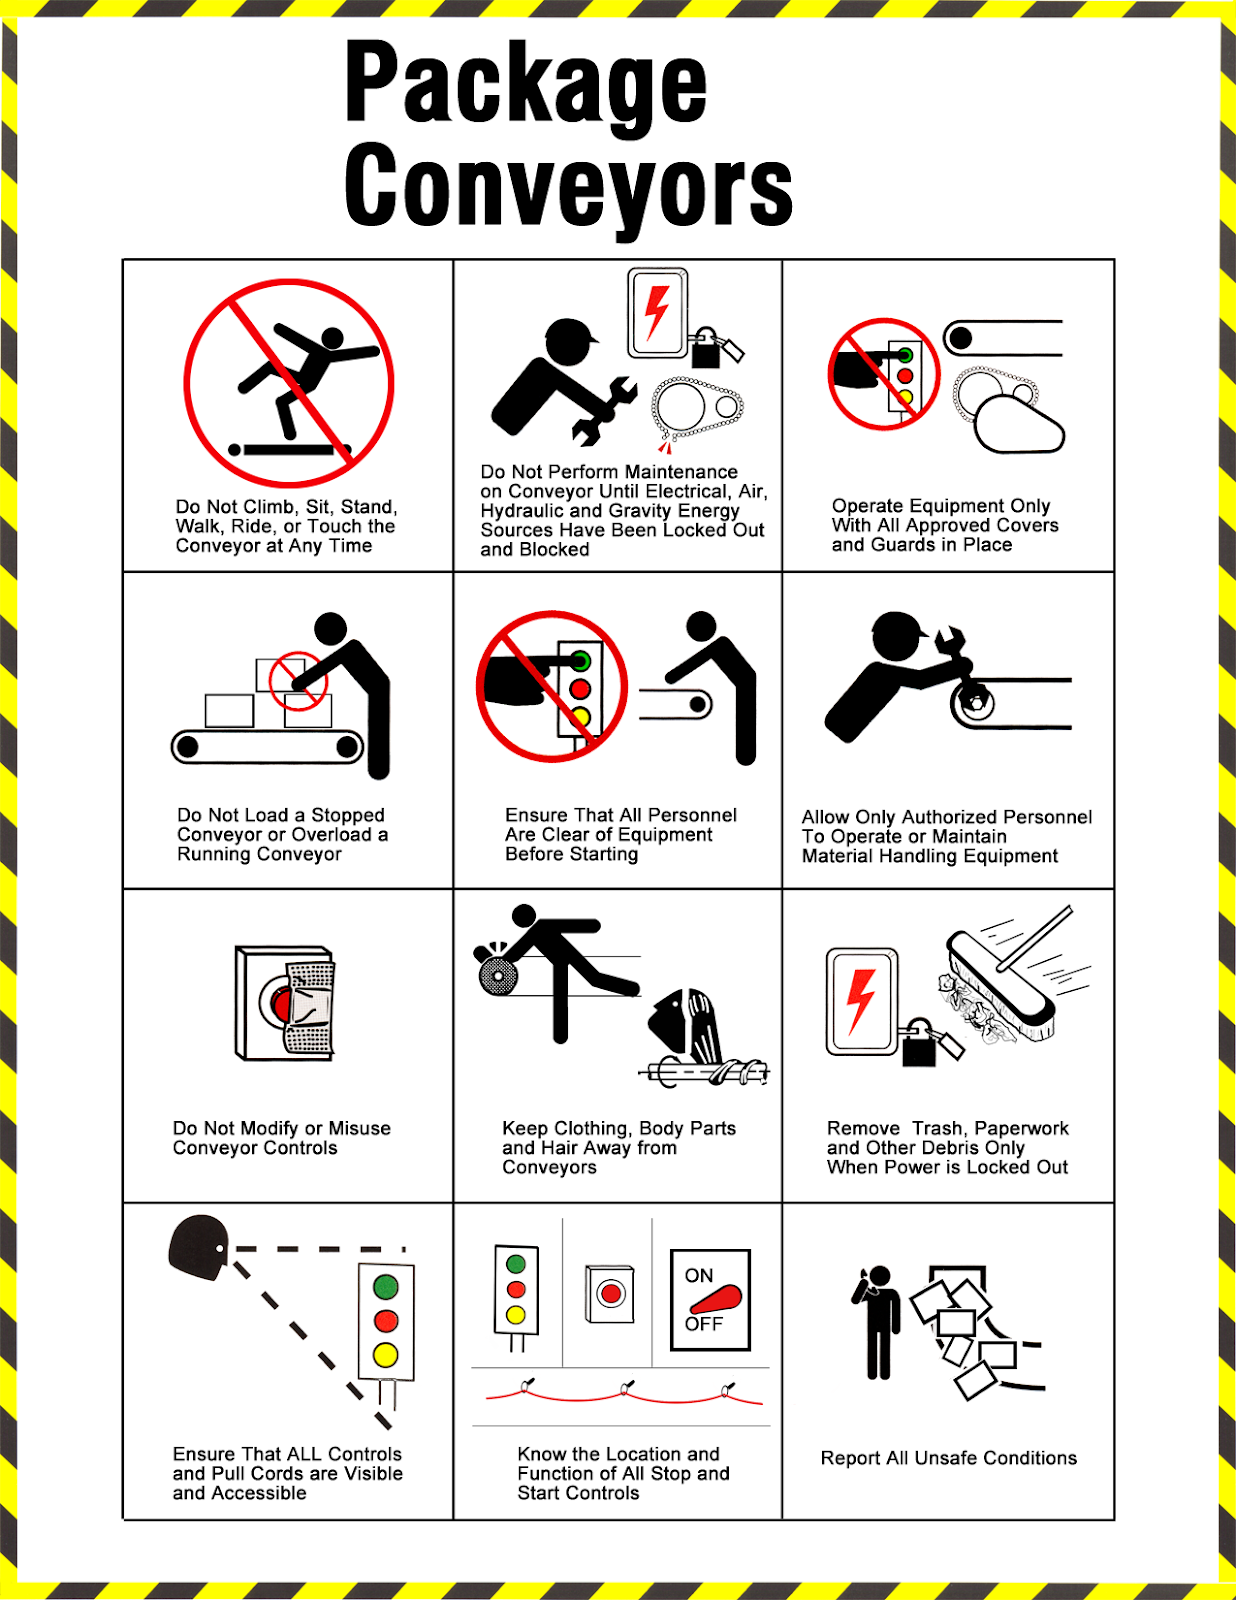 Working Near Package Conveyors Safety Tips Safety Posters Safety Slogans Occupational Health And Safety